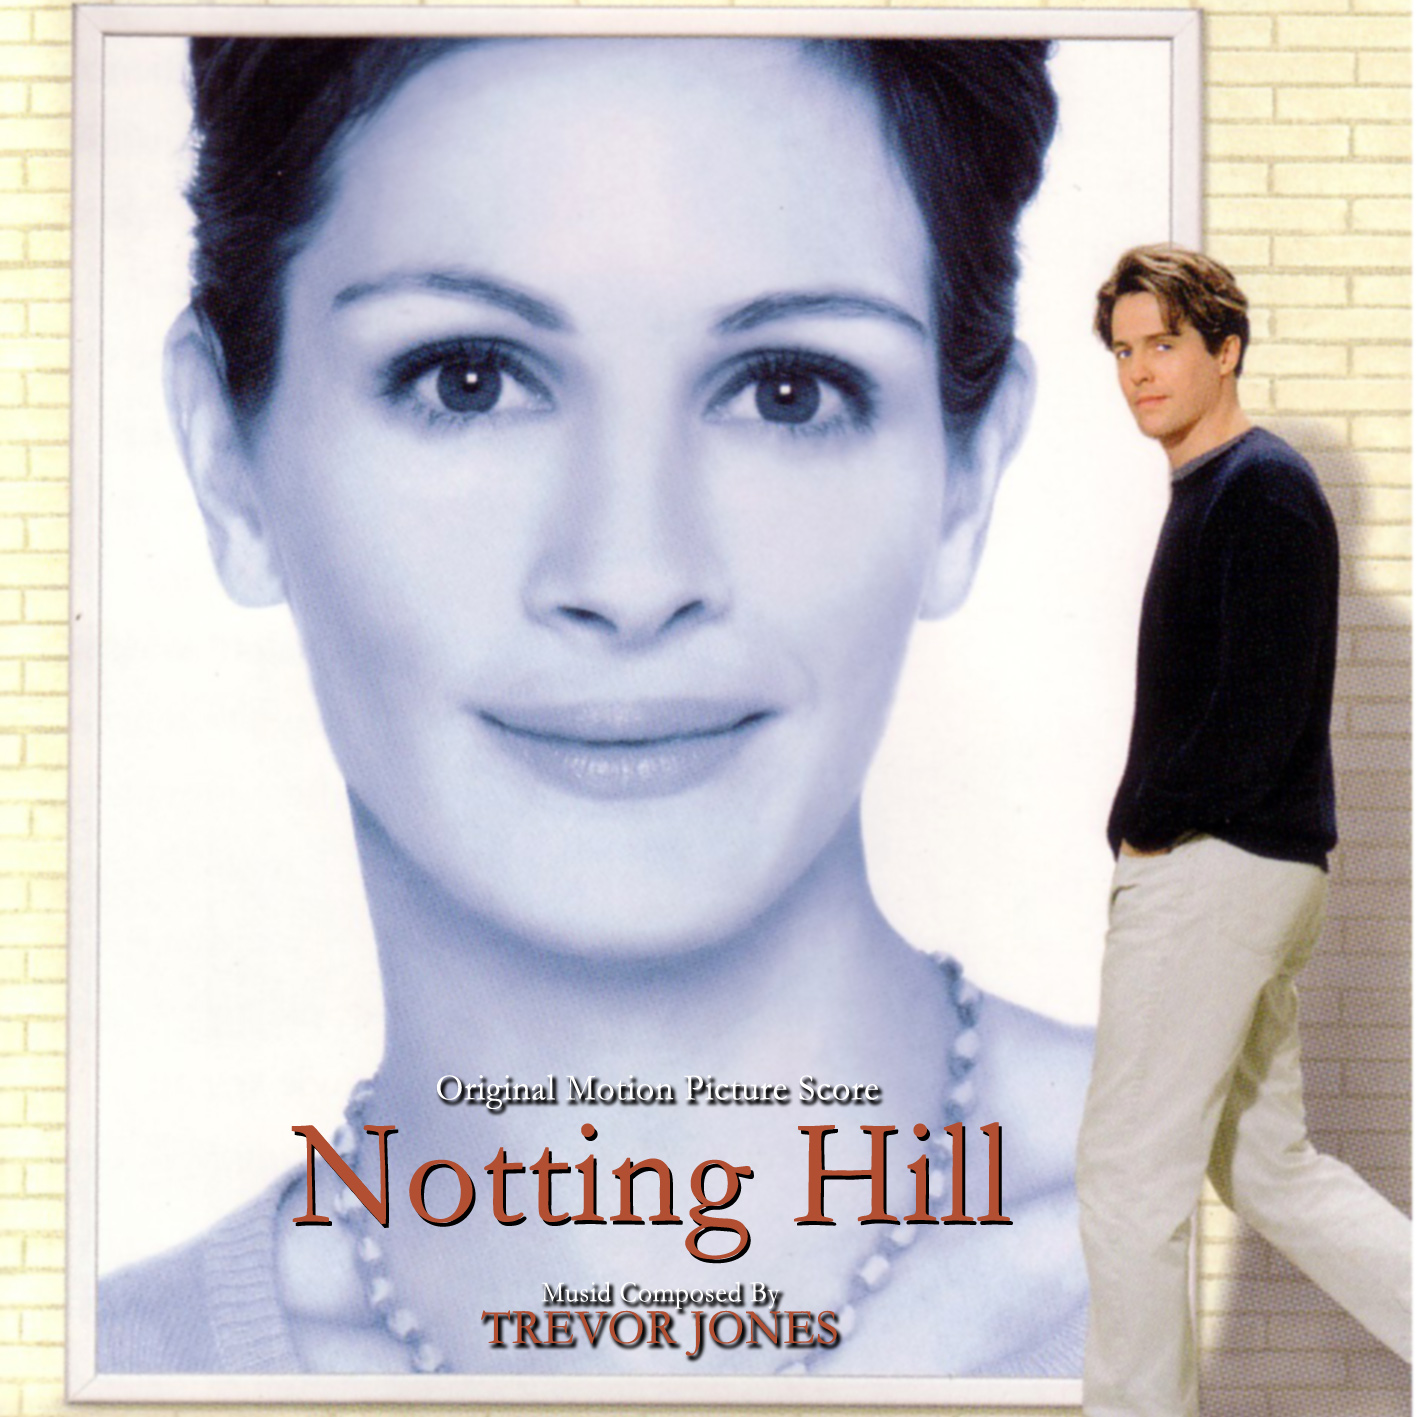 Notting Hill, a Must S...